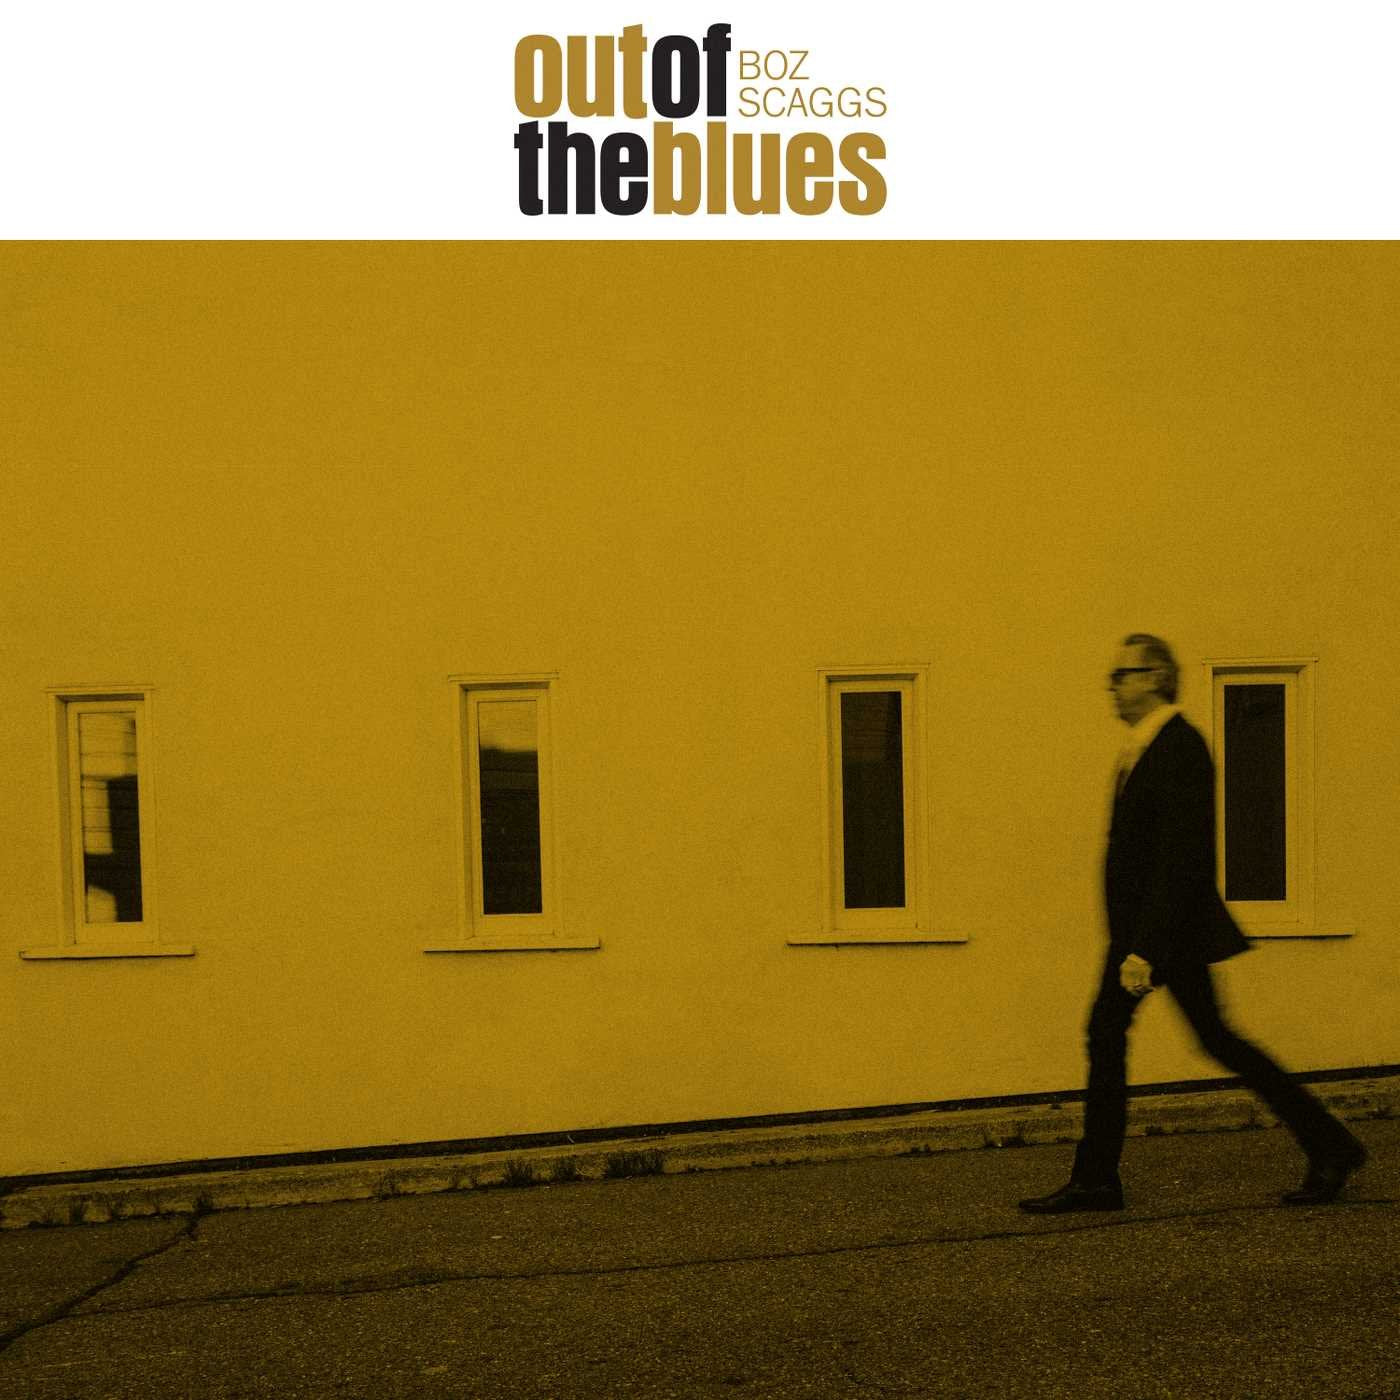 Scaggs. Boz/Out Of The Blue [CD]